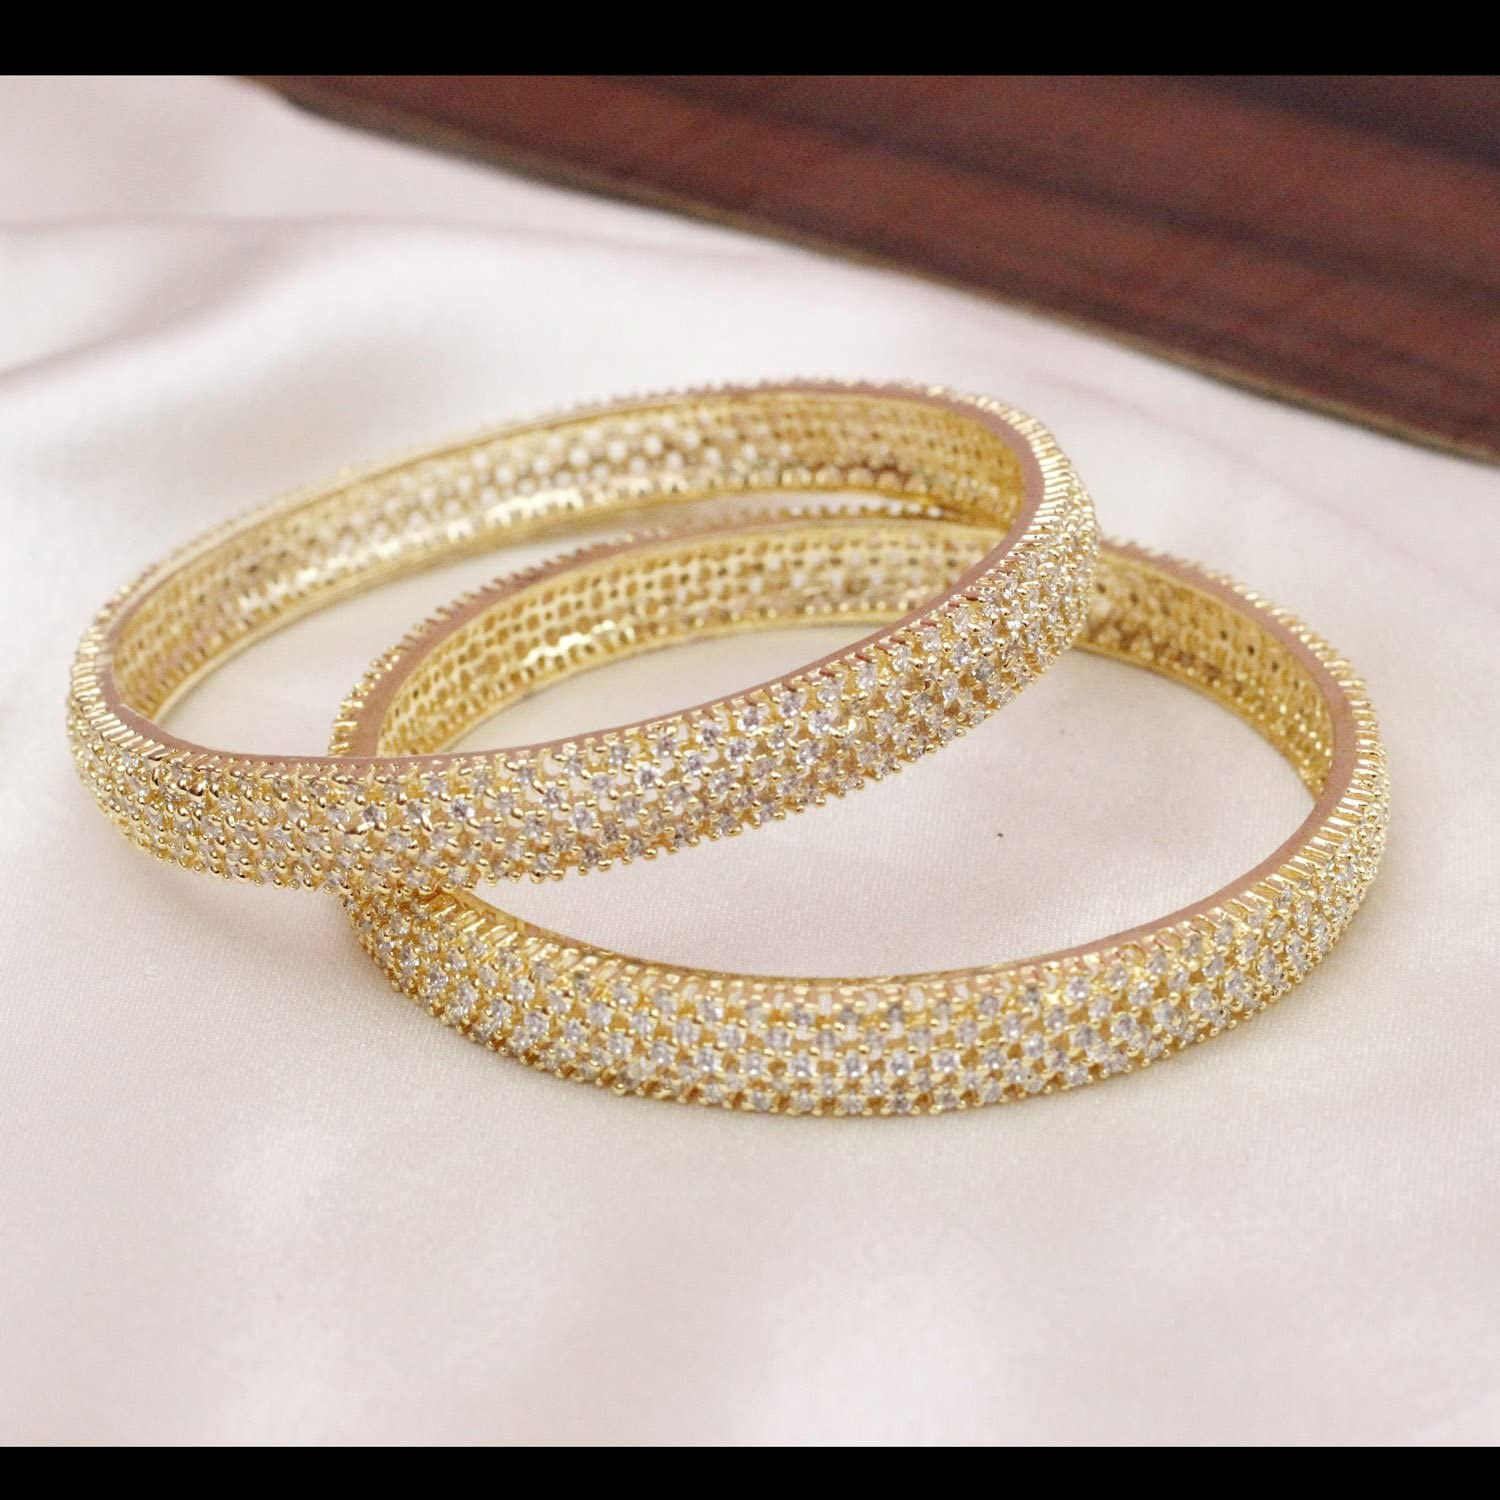 2.8 CHAUHAN COLLECTION 2Pc Indian Antique AD American Gold Plated bangle set women Wedding jewelry